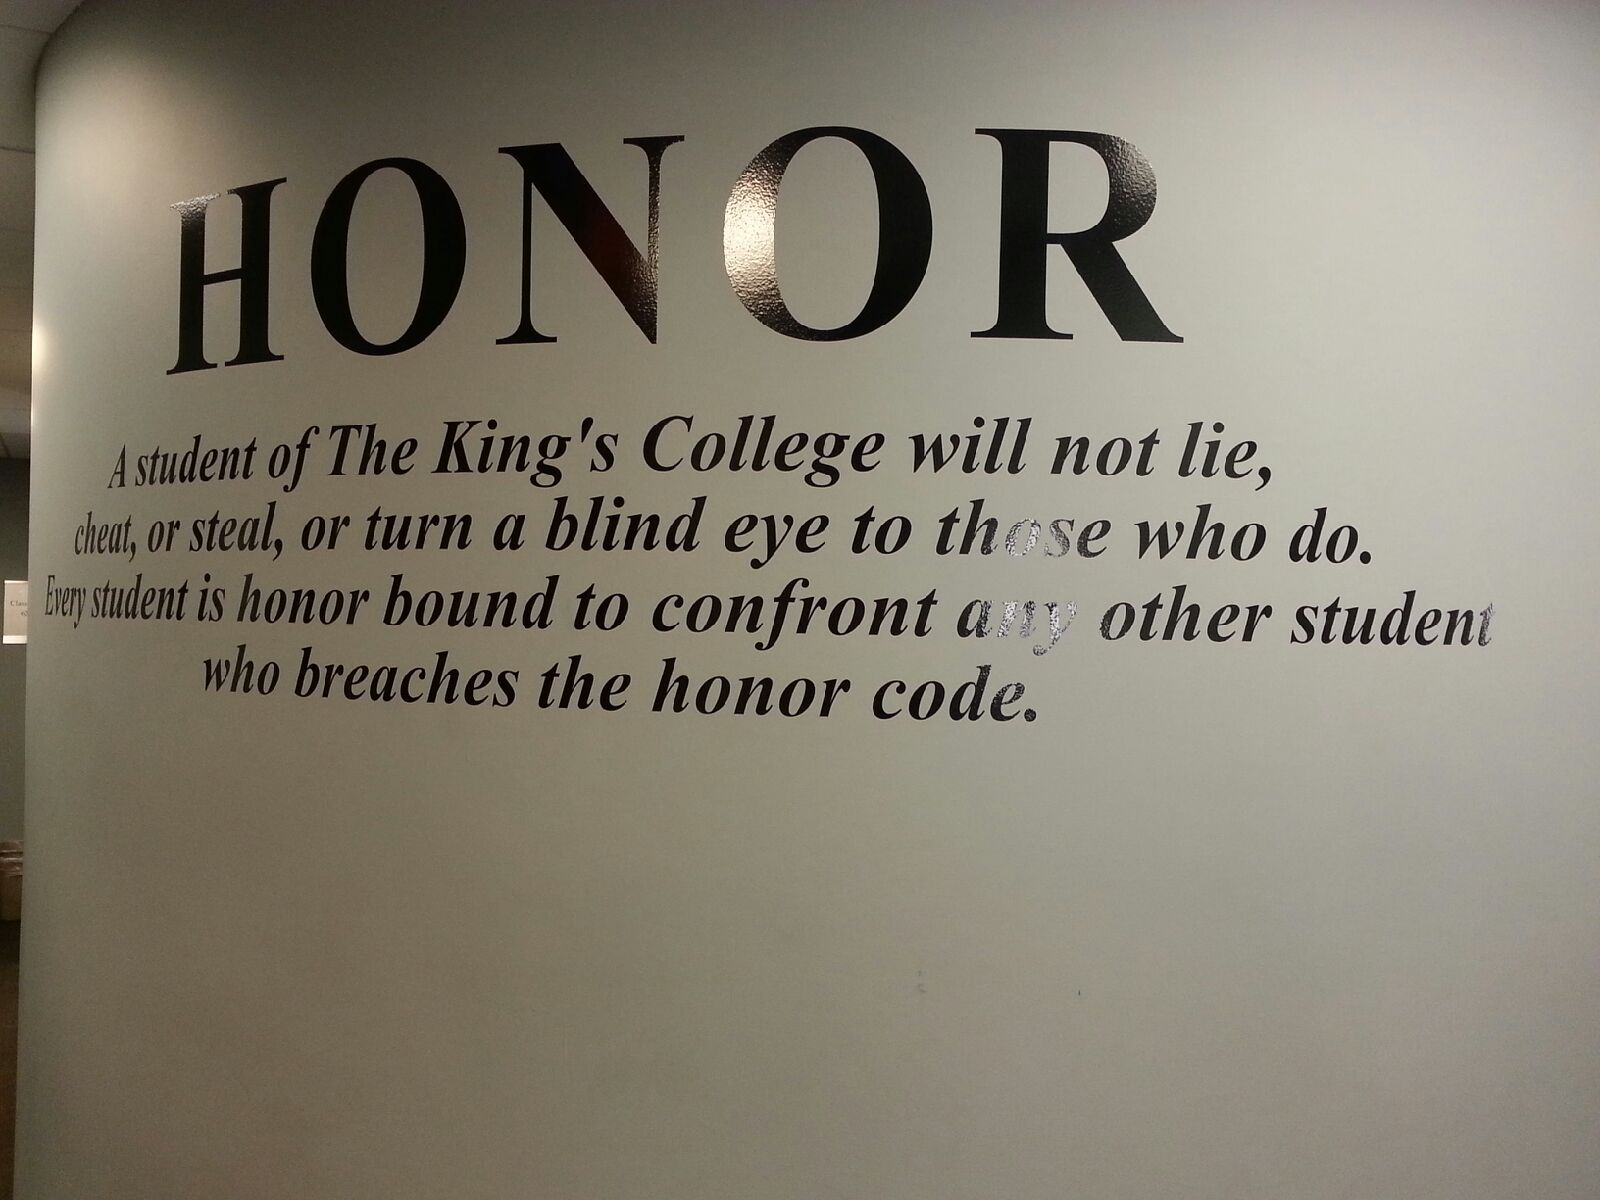 As of now, the student dress code is a part of the King's Honor Code, but some students would prefer if more of a division existed between the two policies.